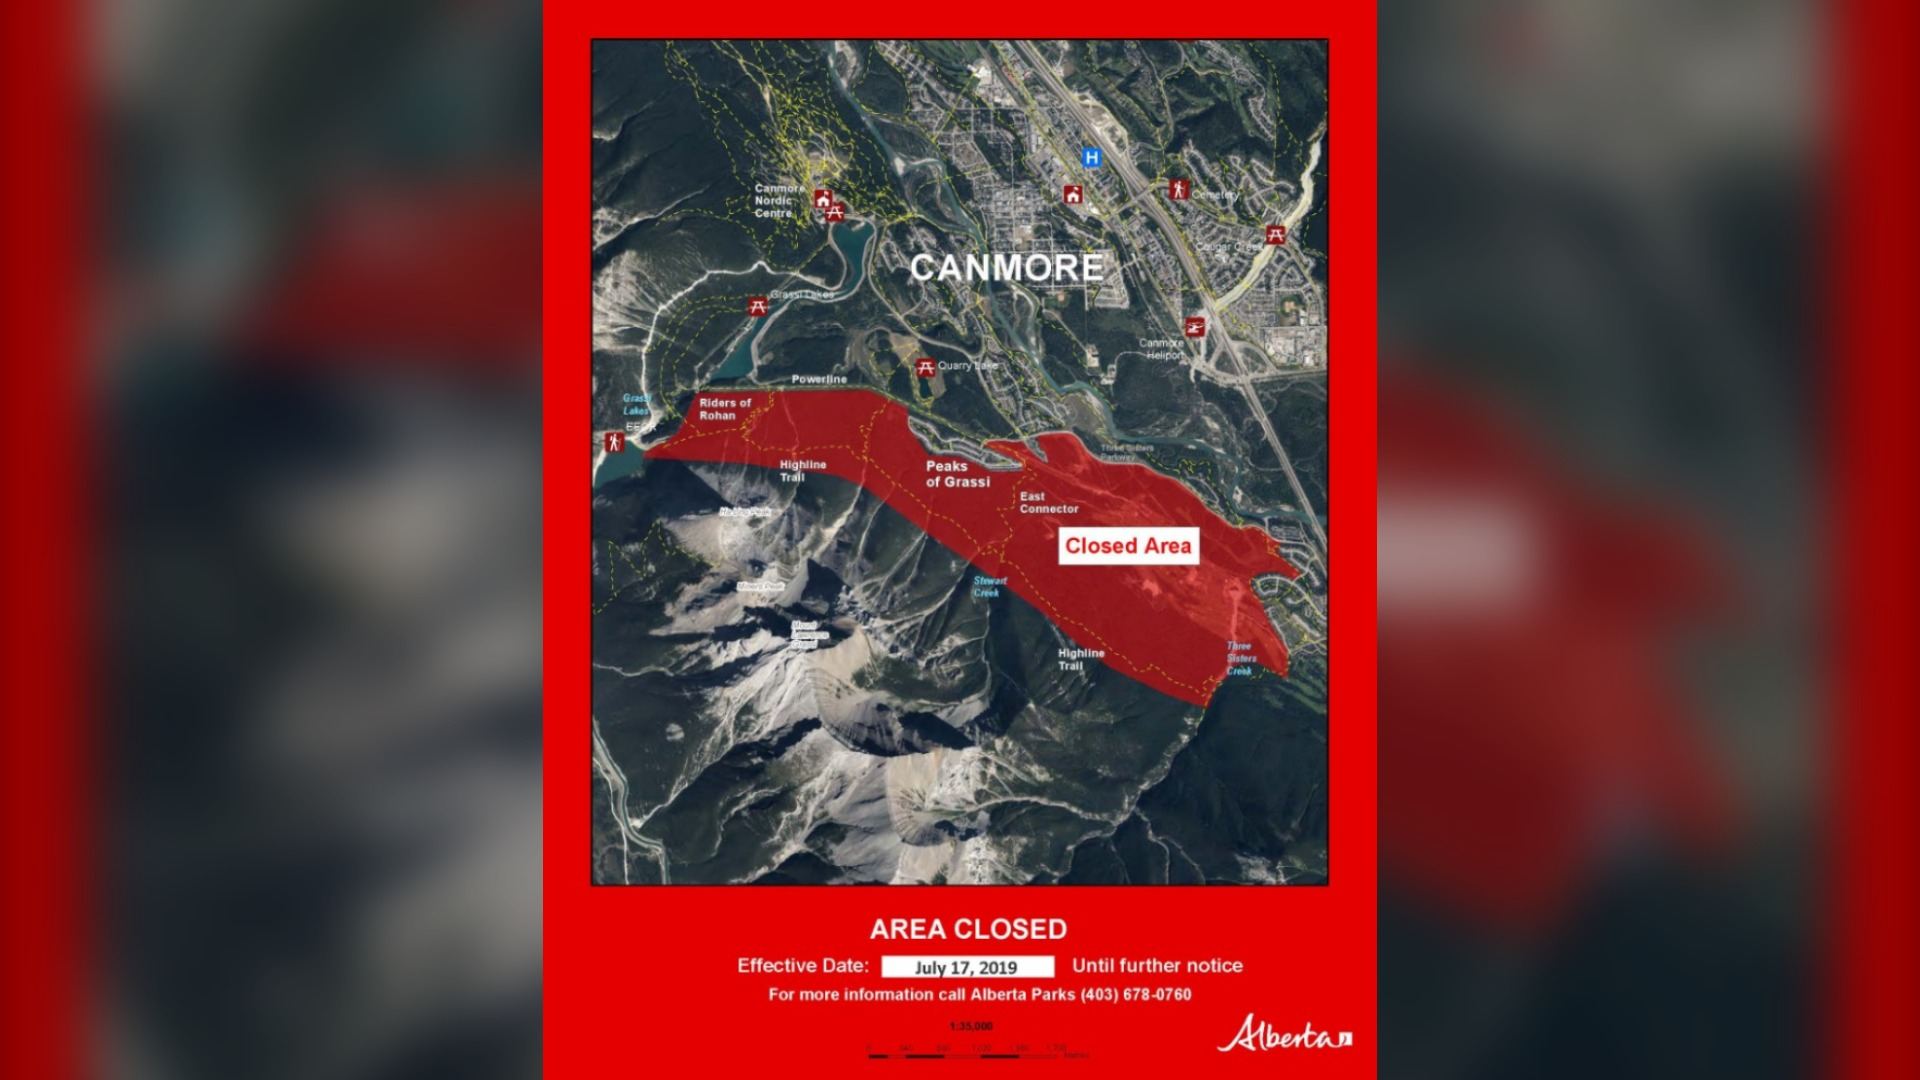 Canmore trails closed after grizzly sow with cubs spotted in area